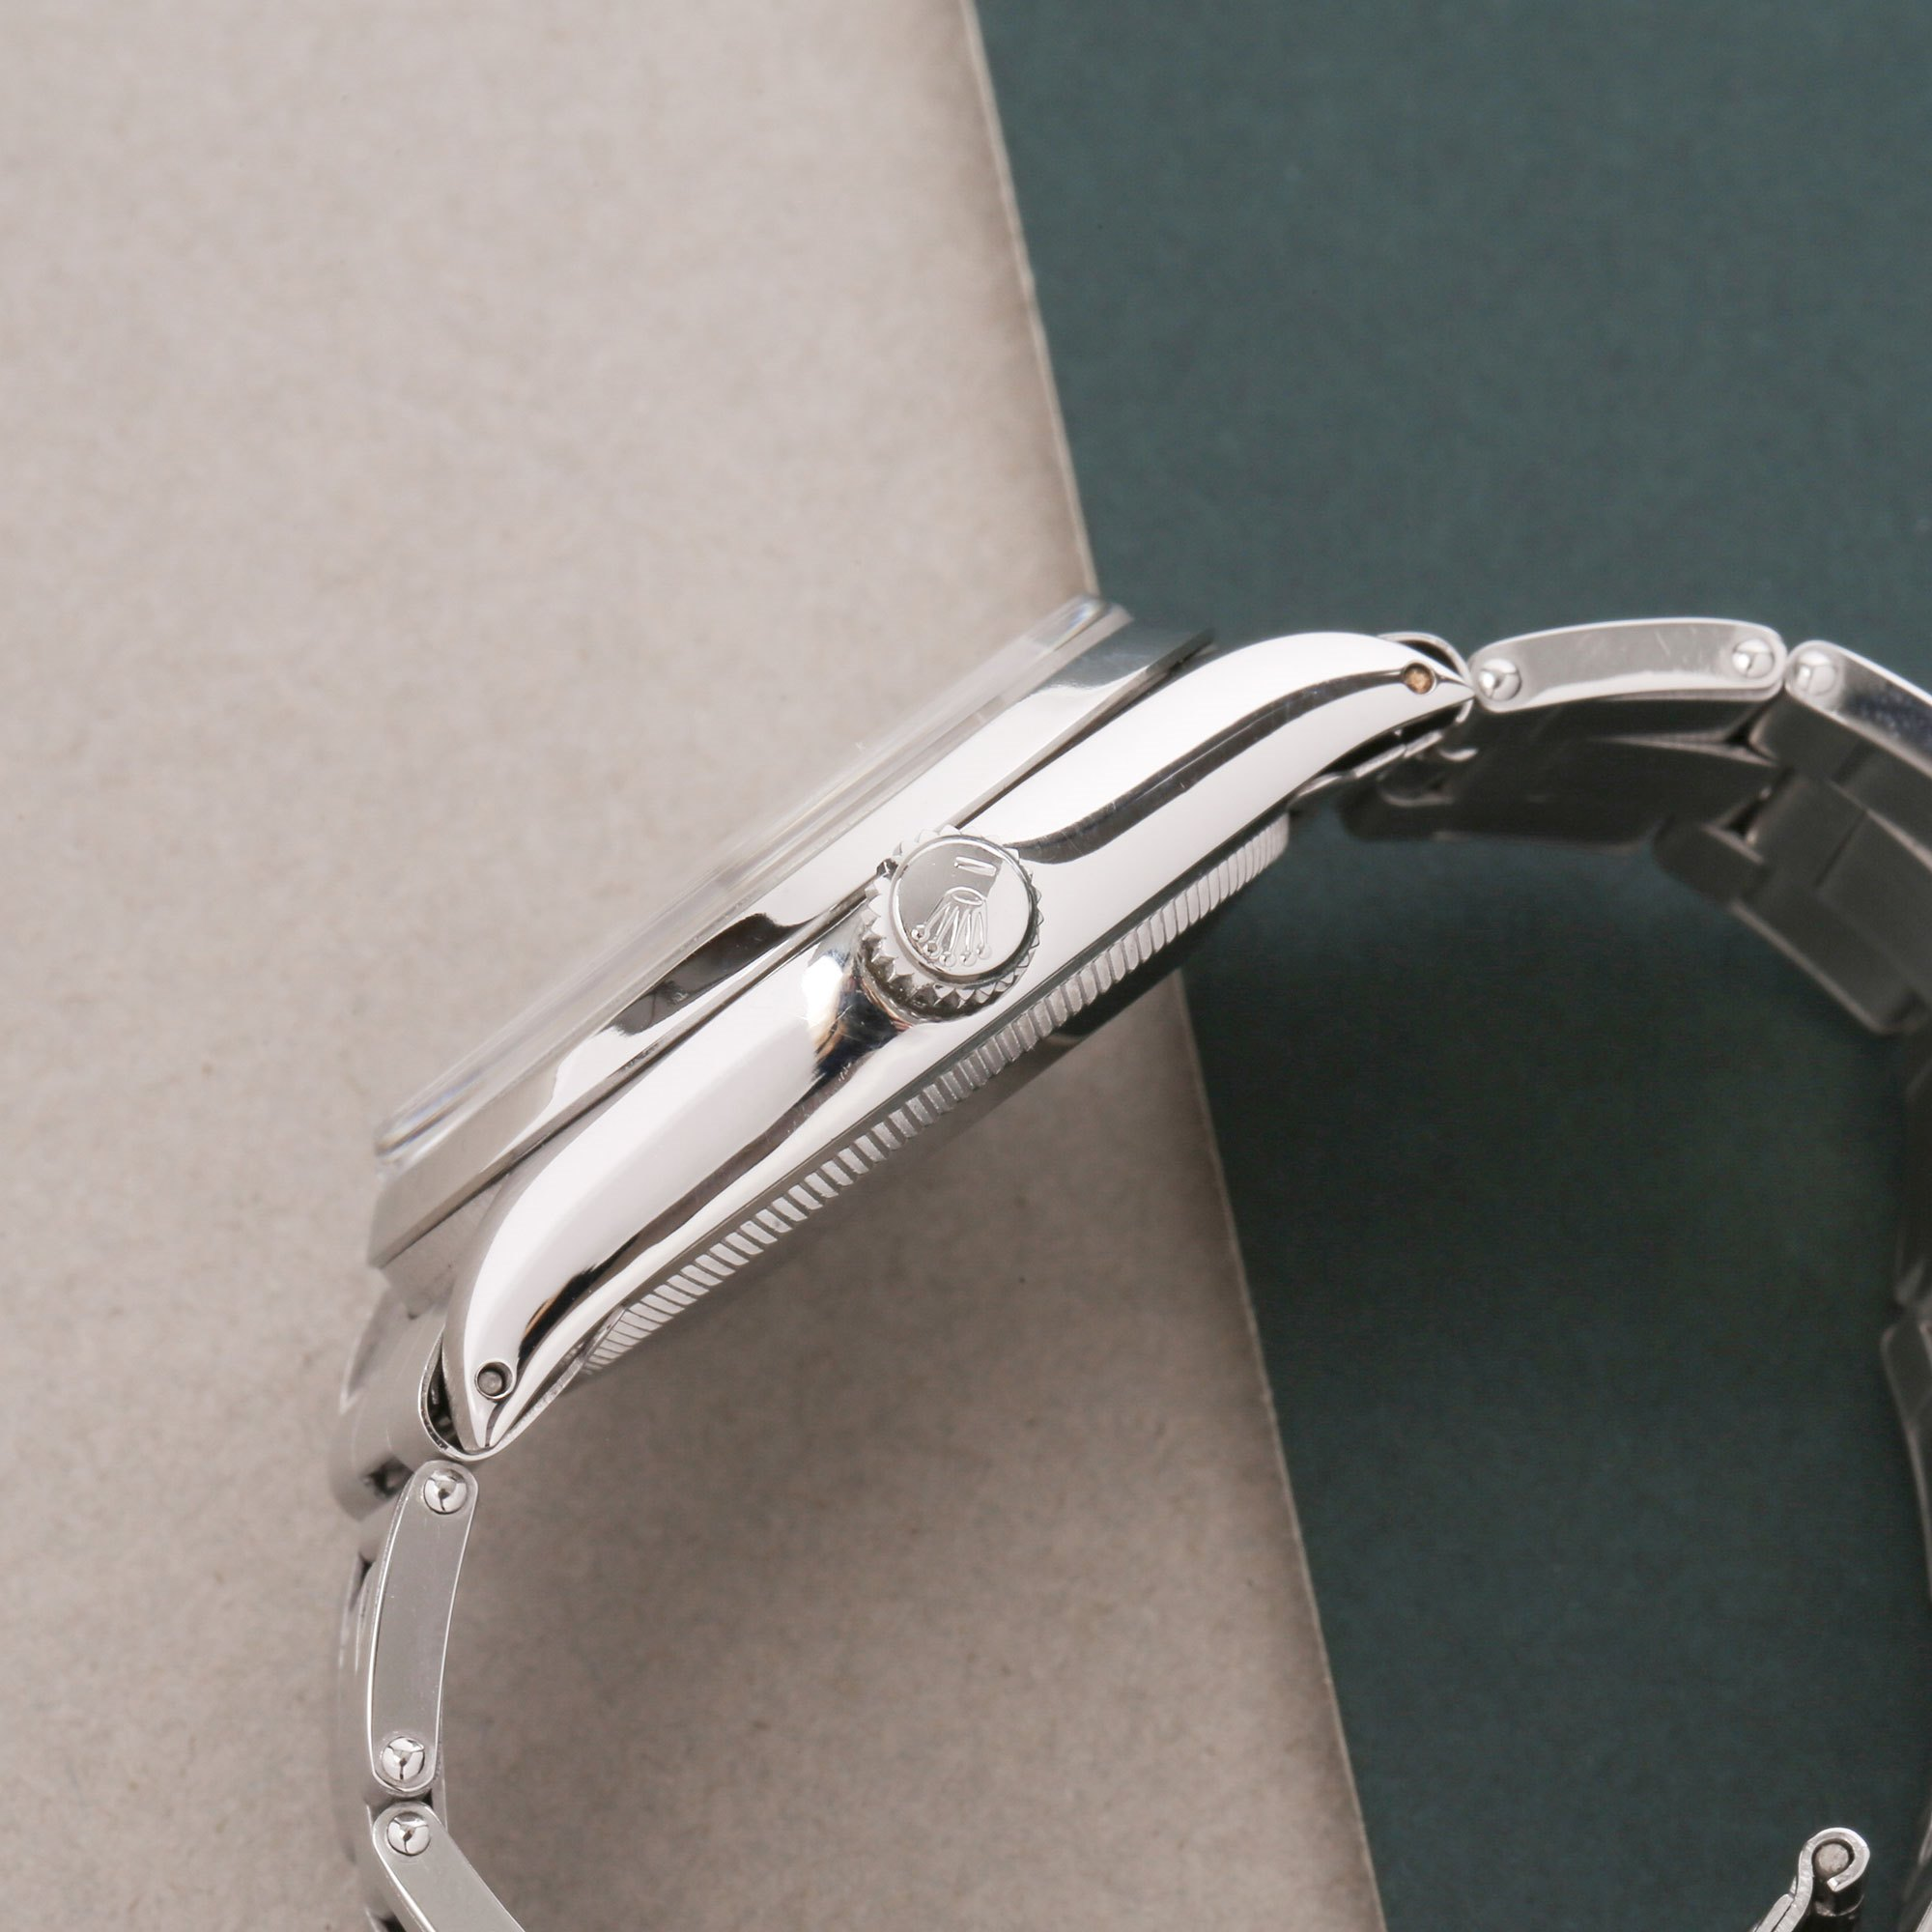 Rolex Air-King Precision Stainless Steel 5500